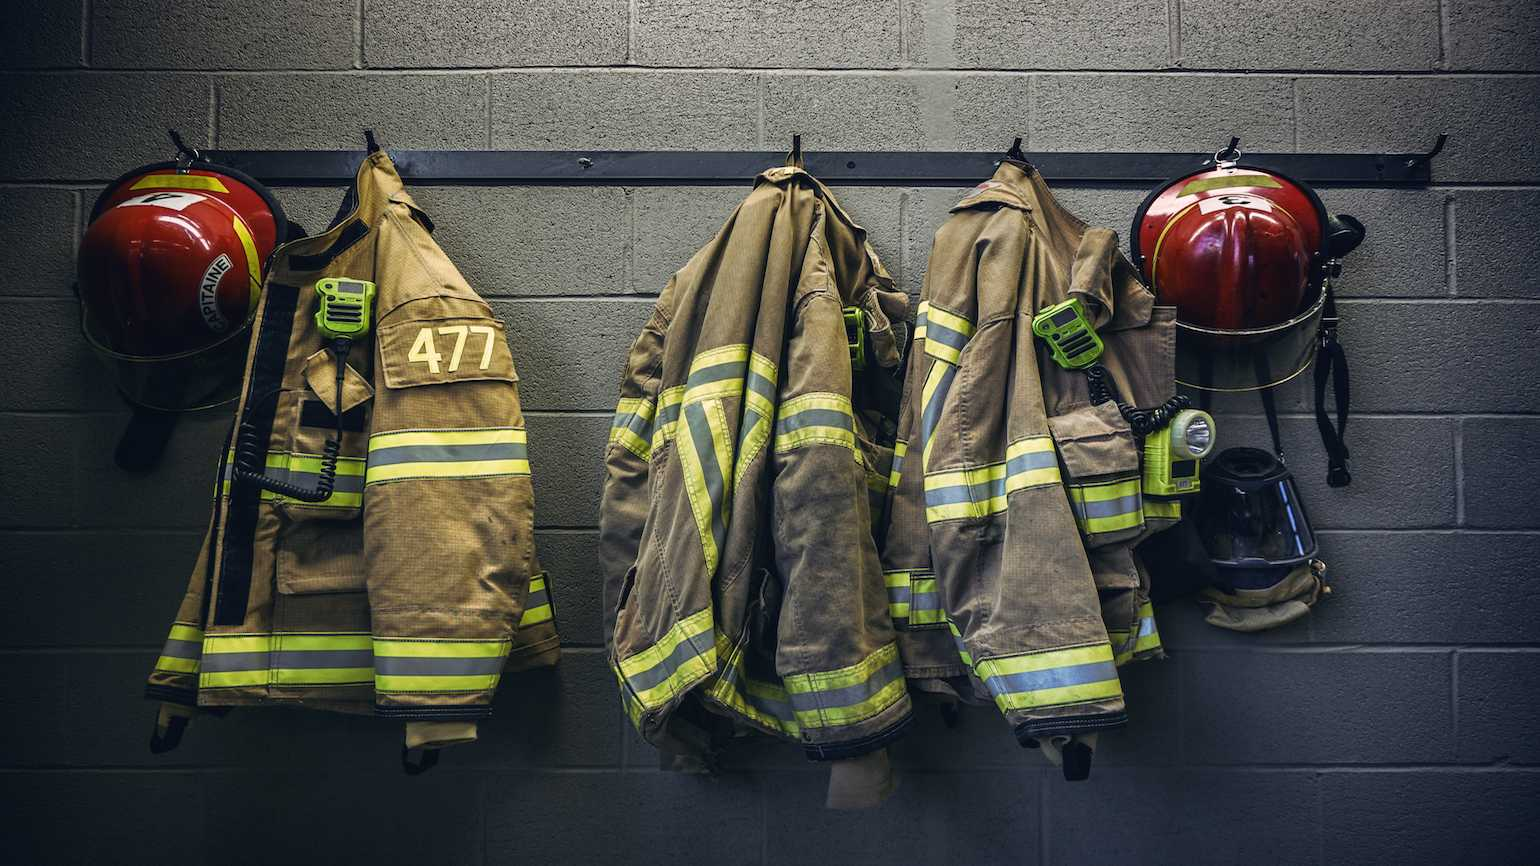 firefighter uniforms, Getty images